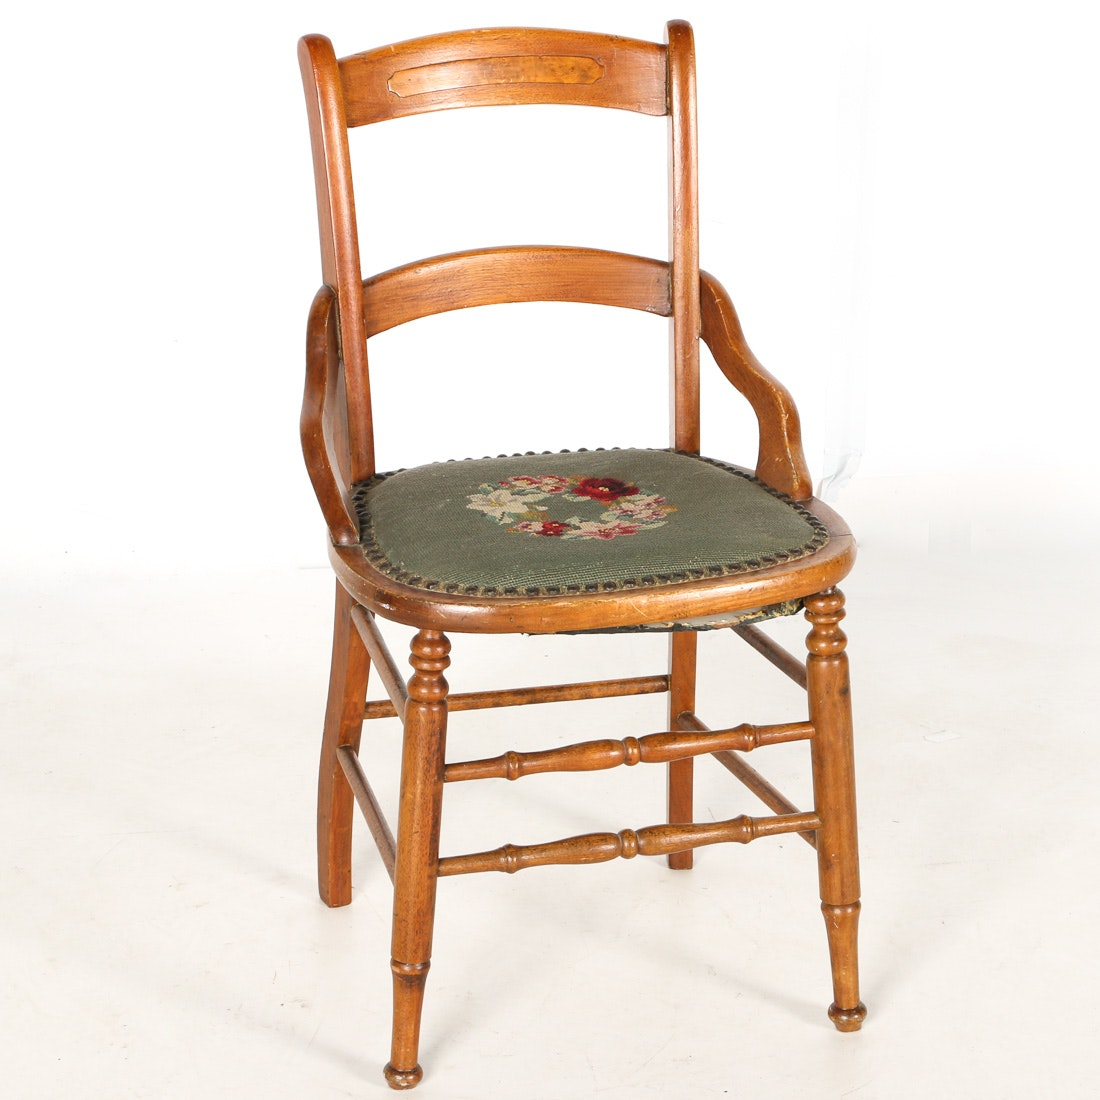 Crewel Embroidered Chair